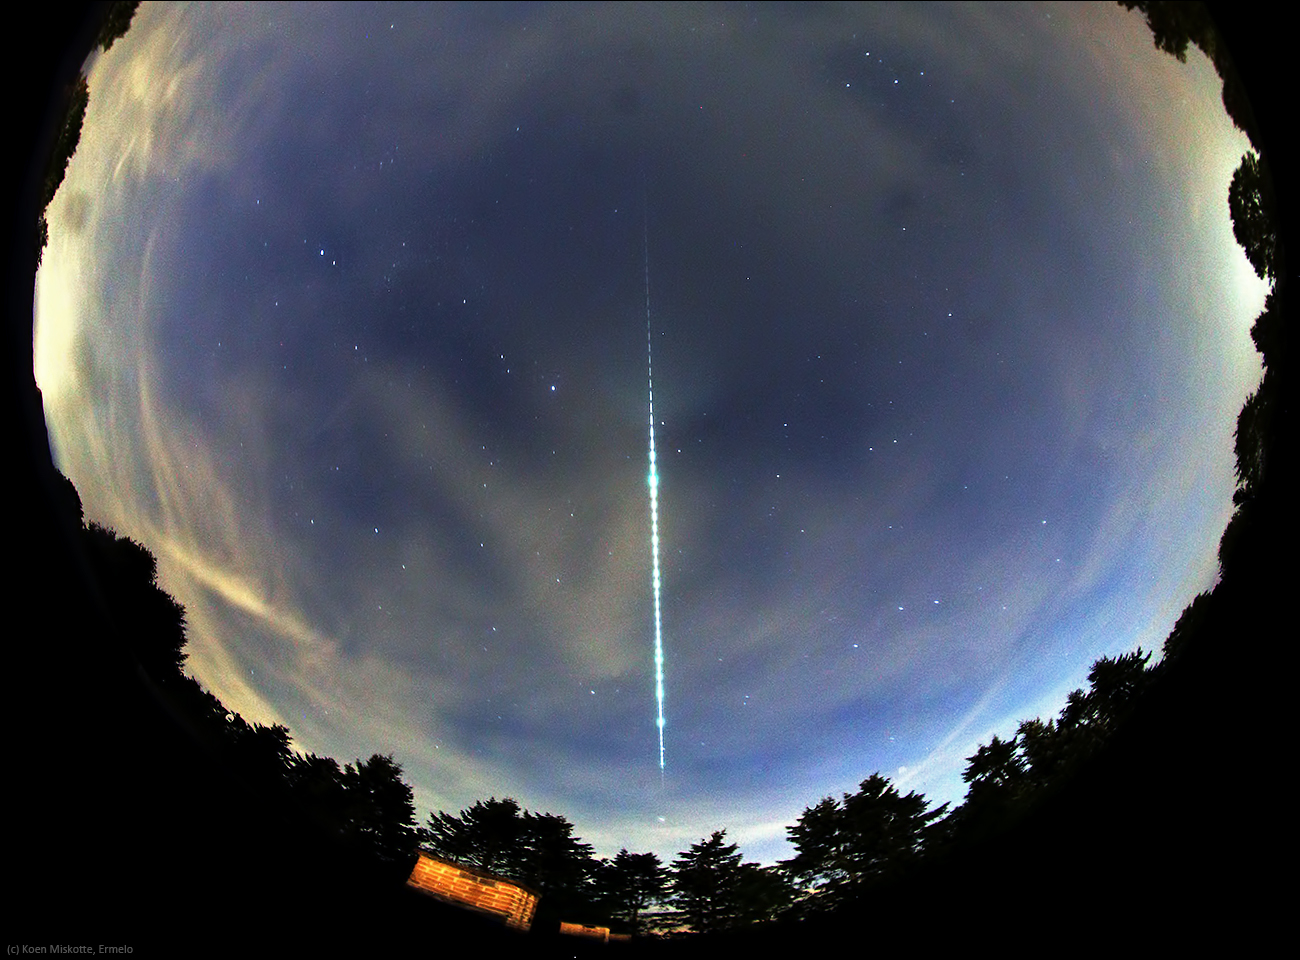 Bright meteor over Europe